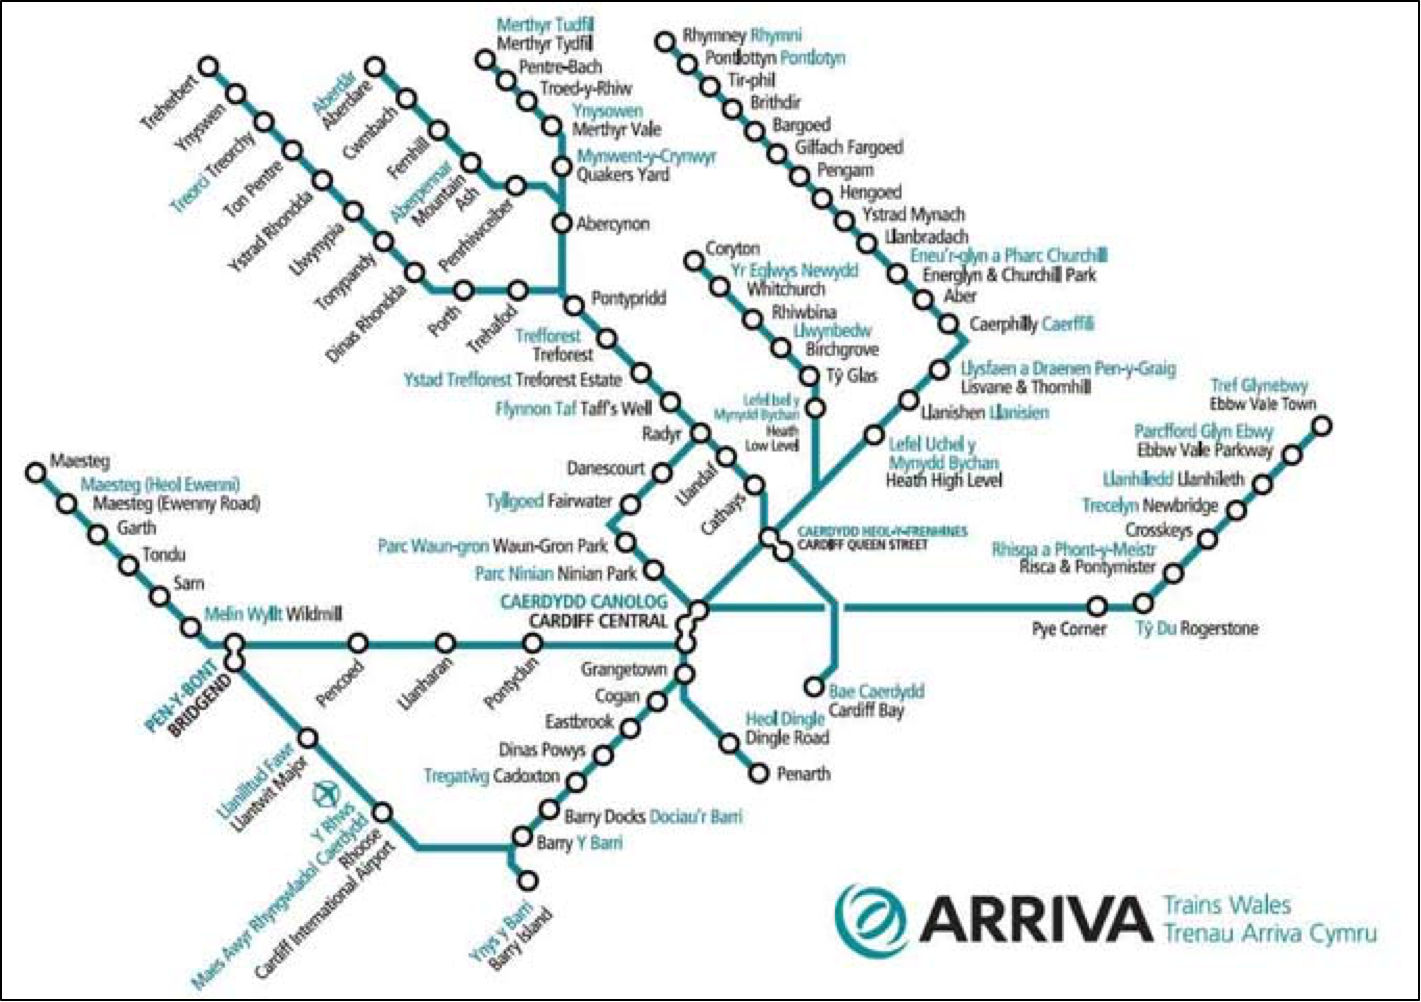 Arriva Trains Wales Map Arriva Trains Wales Railway Network Athens Tourist Attractions Map Arriva Trains Wales Map